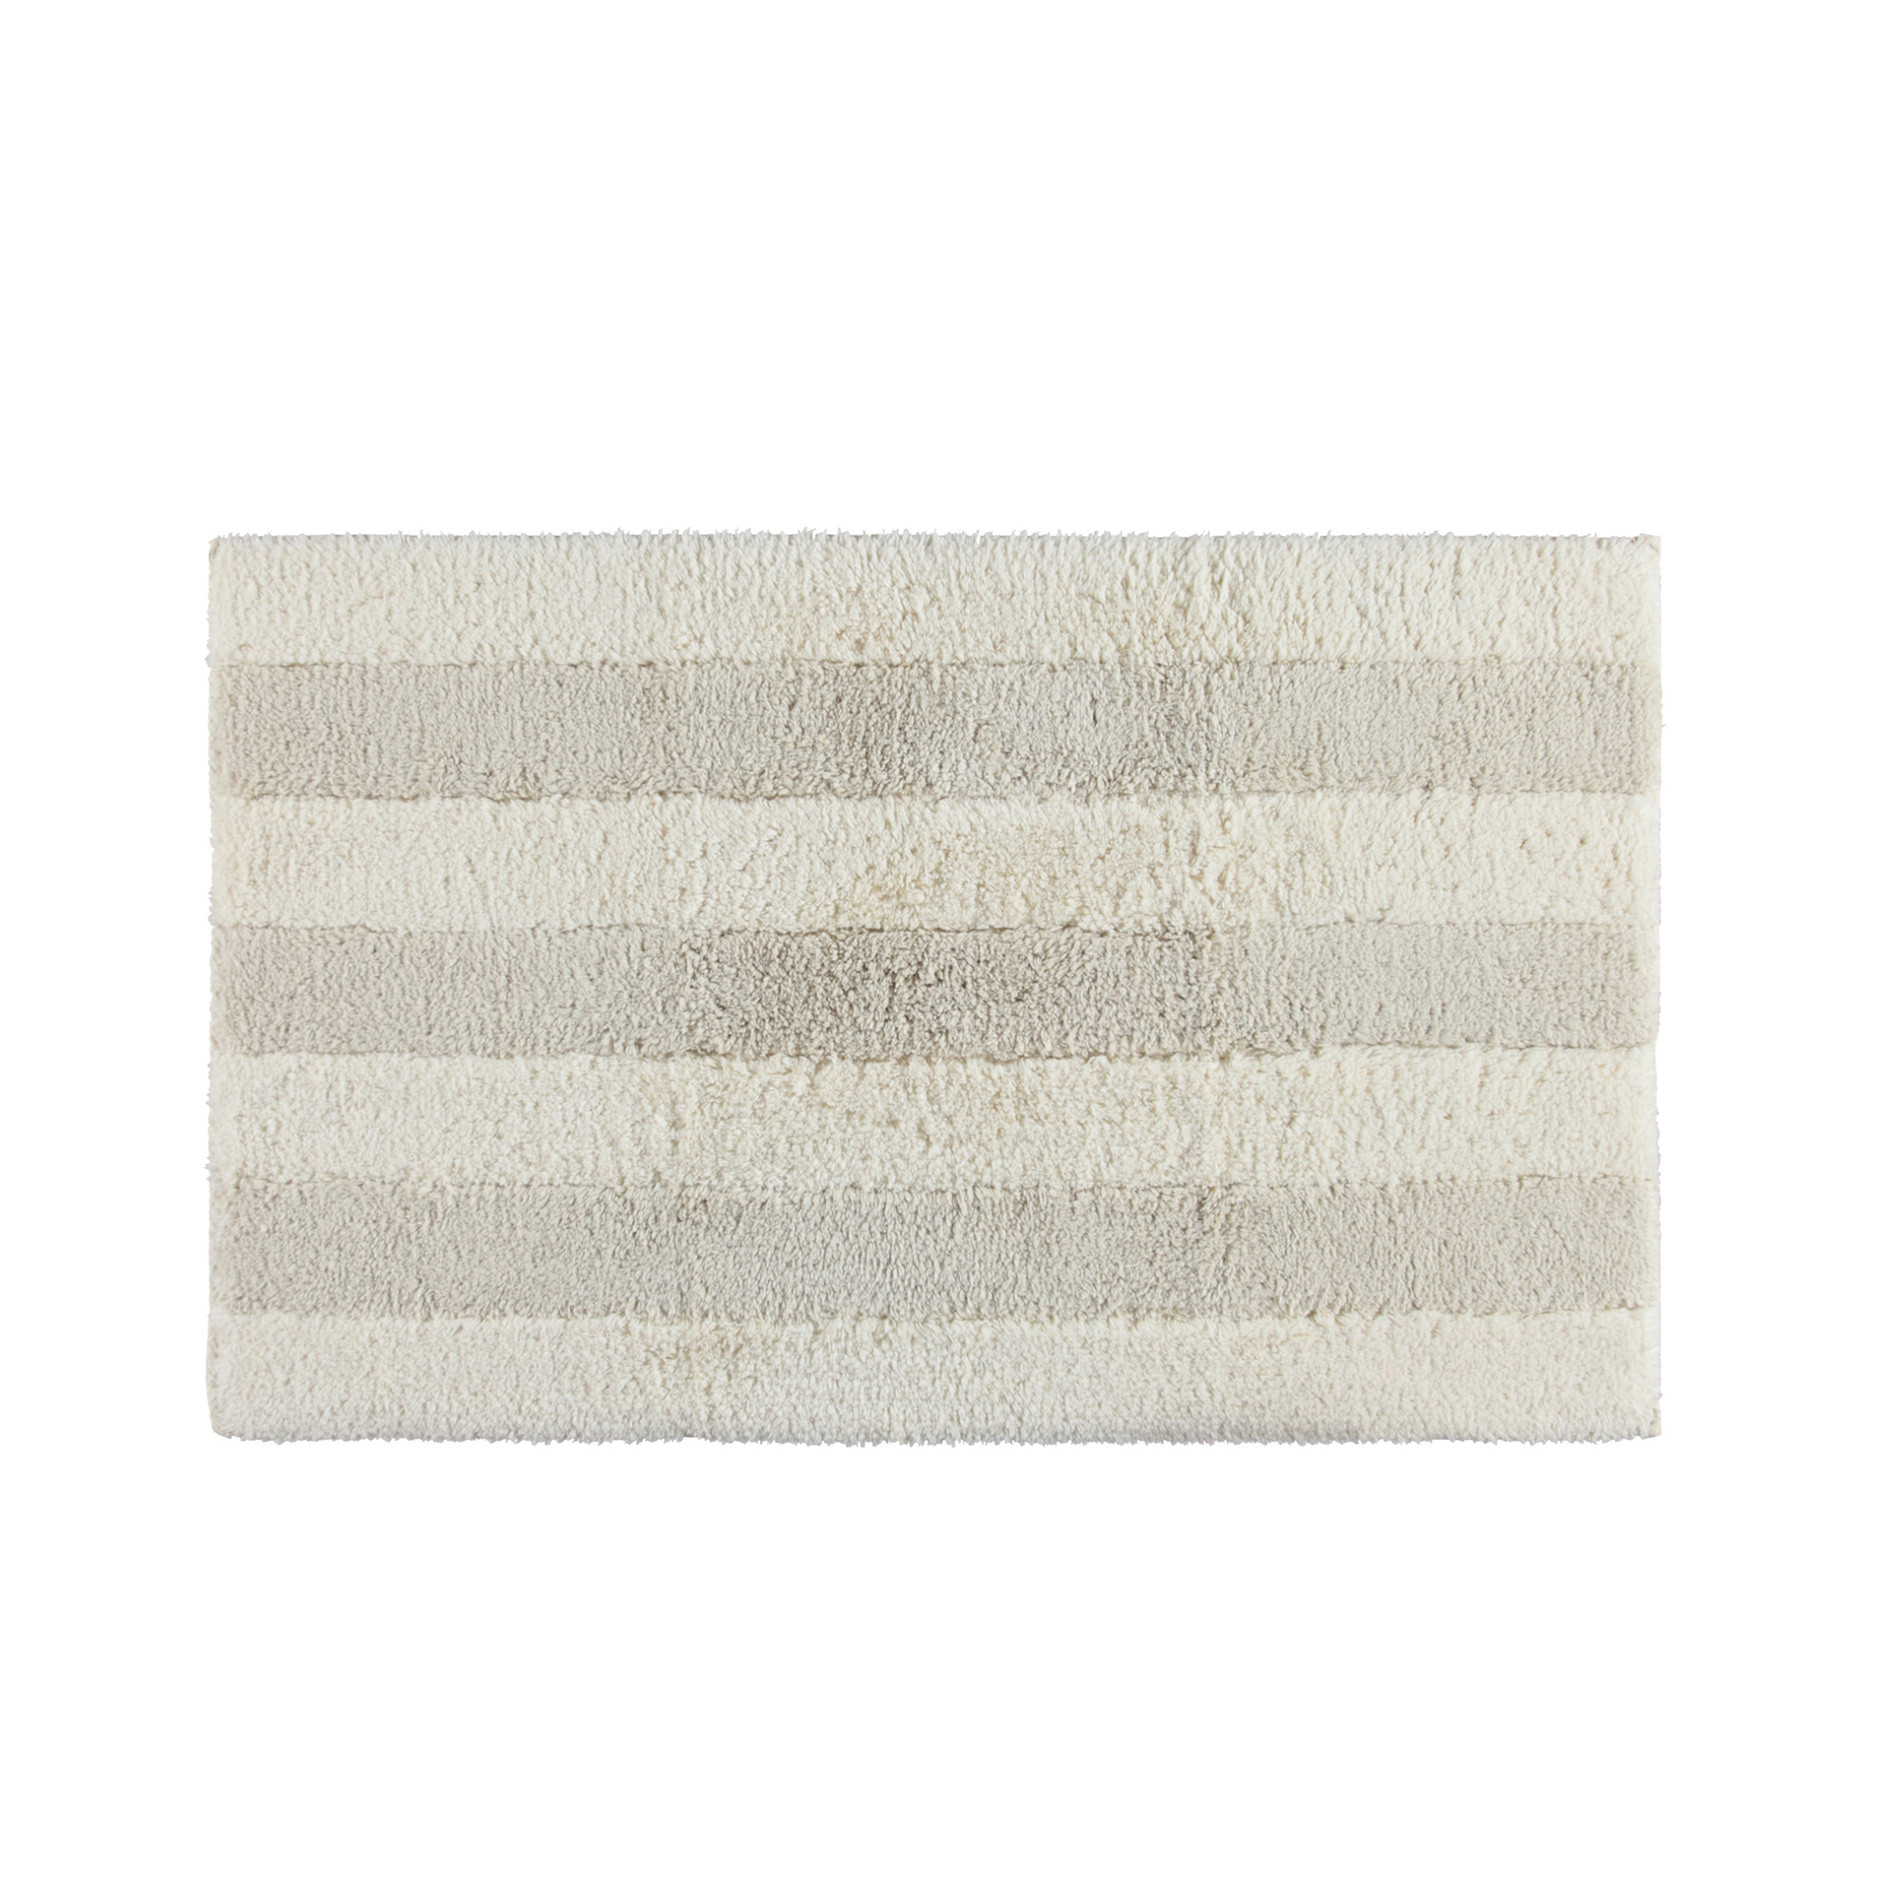 Tappeto bagno in puro cotone Thermae, Bianco/Beige, large image number 0